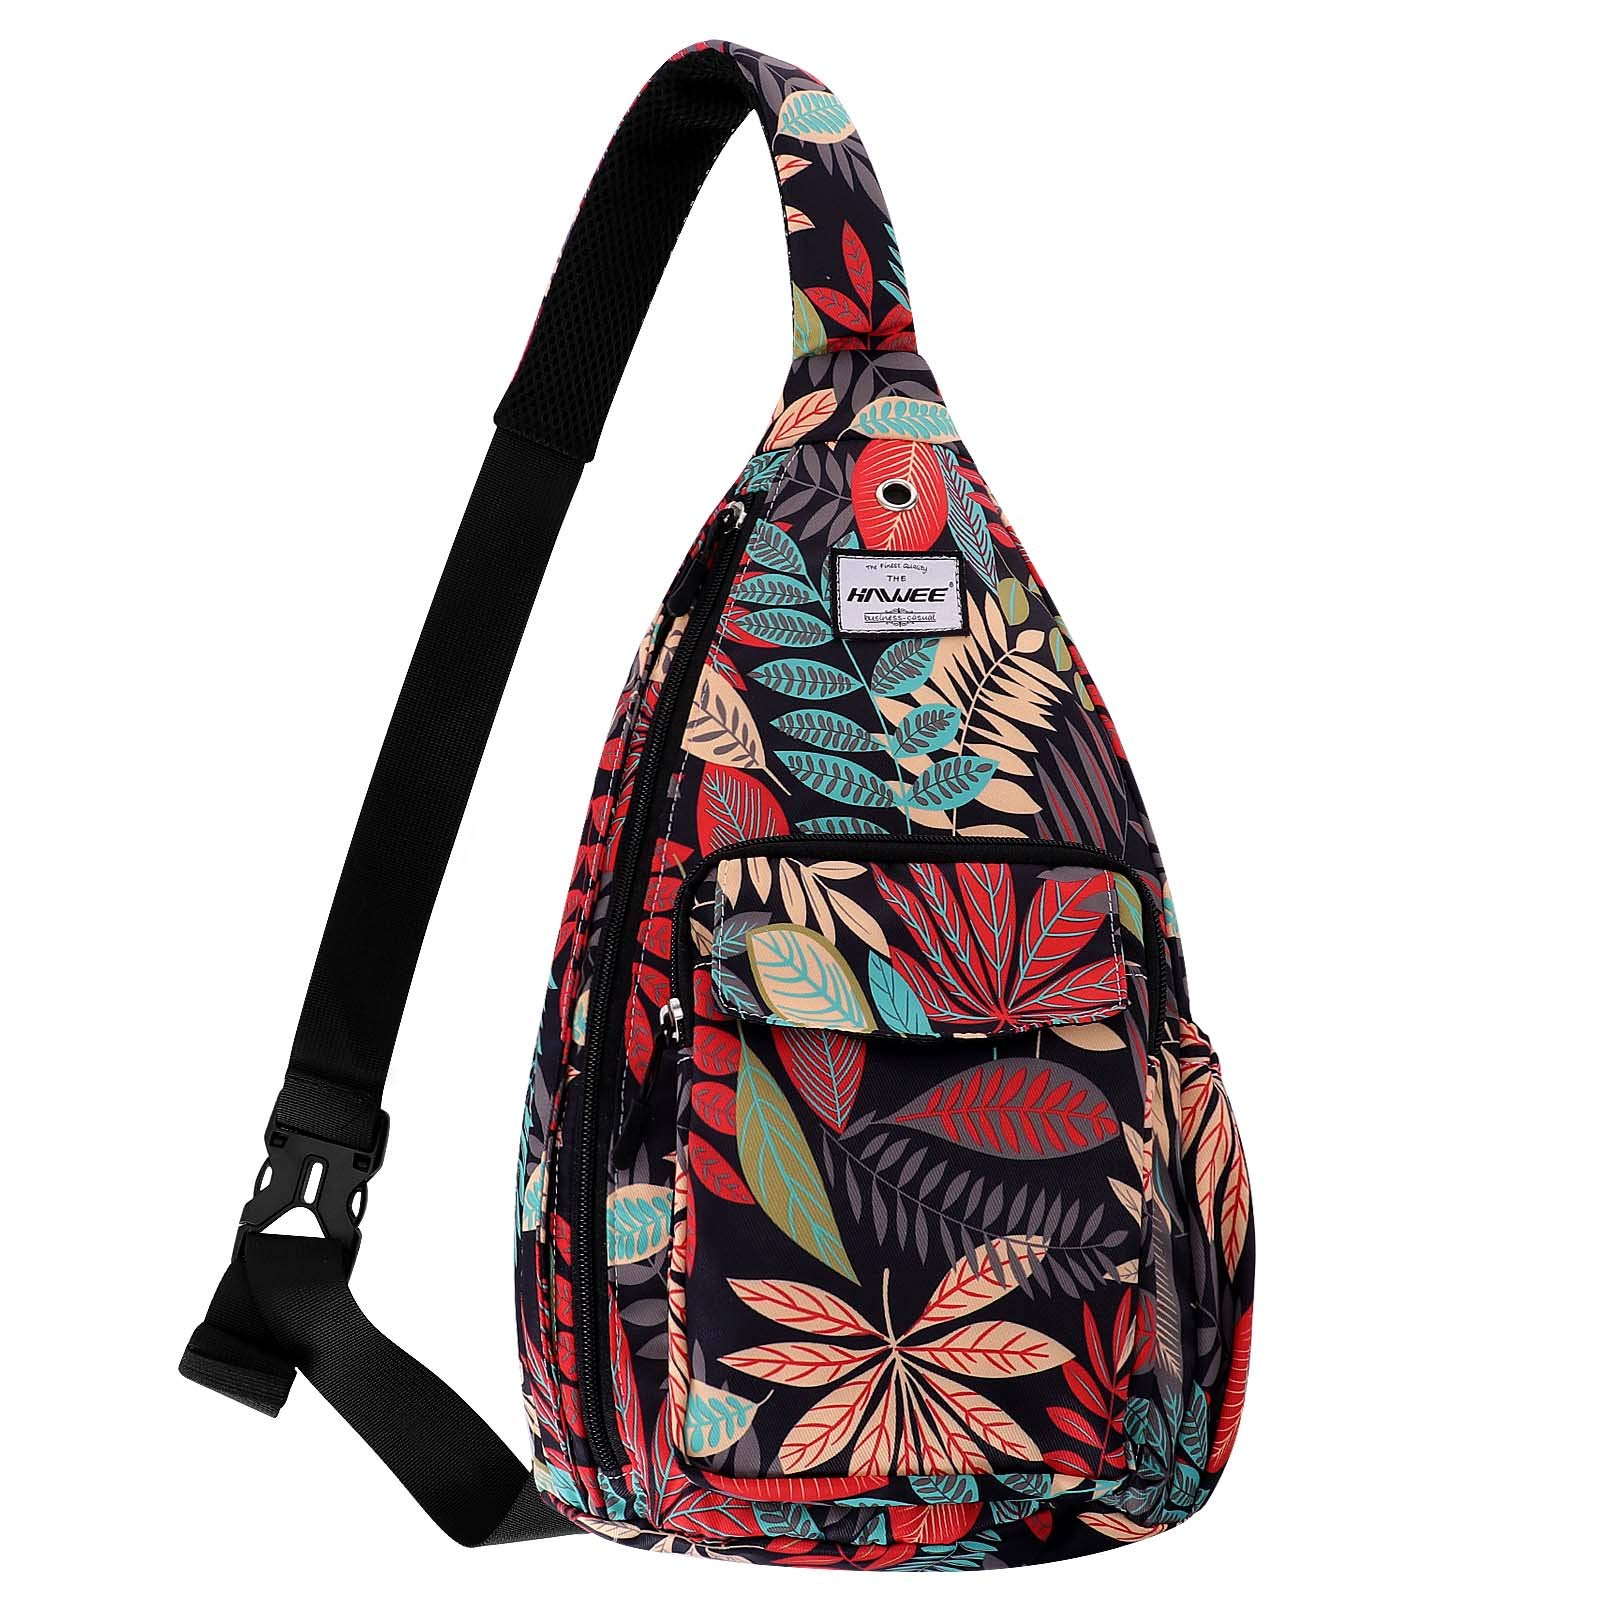 HAWEE Sling Bag for Women Anti-Water Crossbody Backpack Inclined Shoulder Daypack with Adjustable Strap, Maple Red